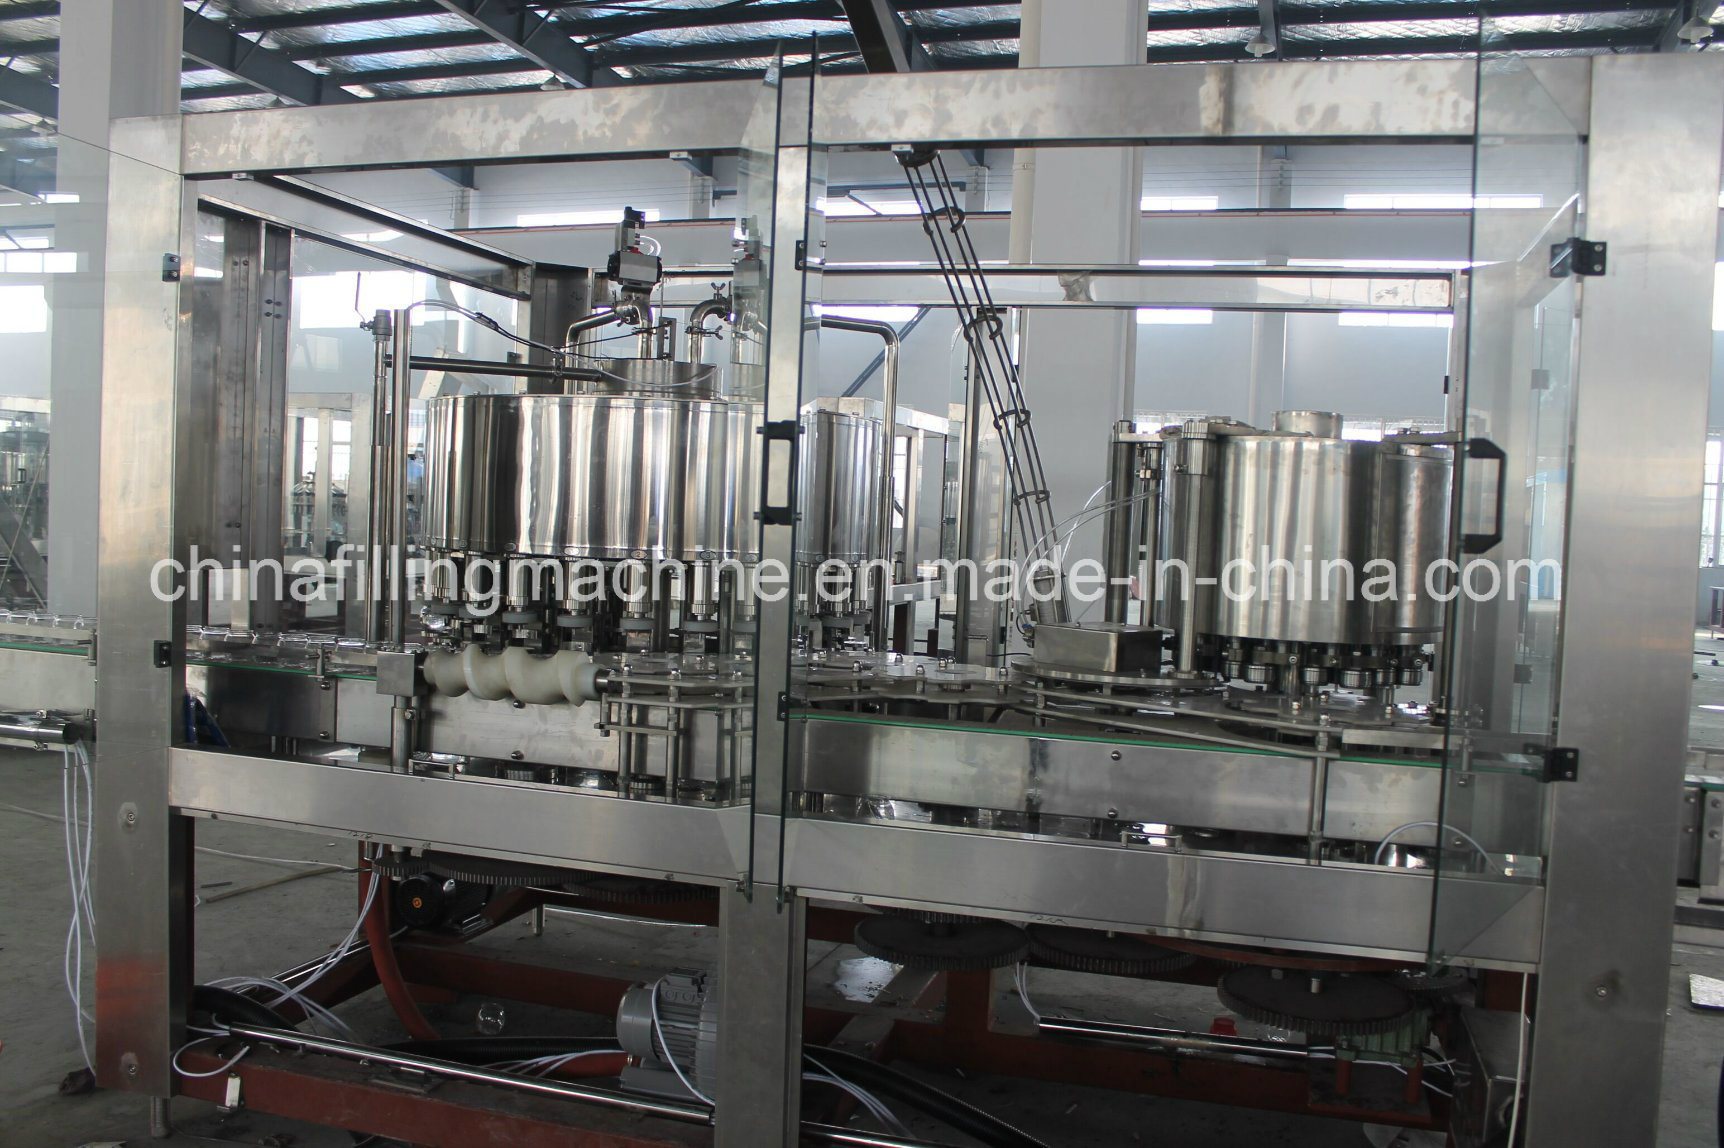 New Design Beverage Can Filling Machine with Ce Certificate